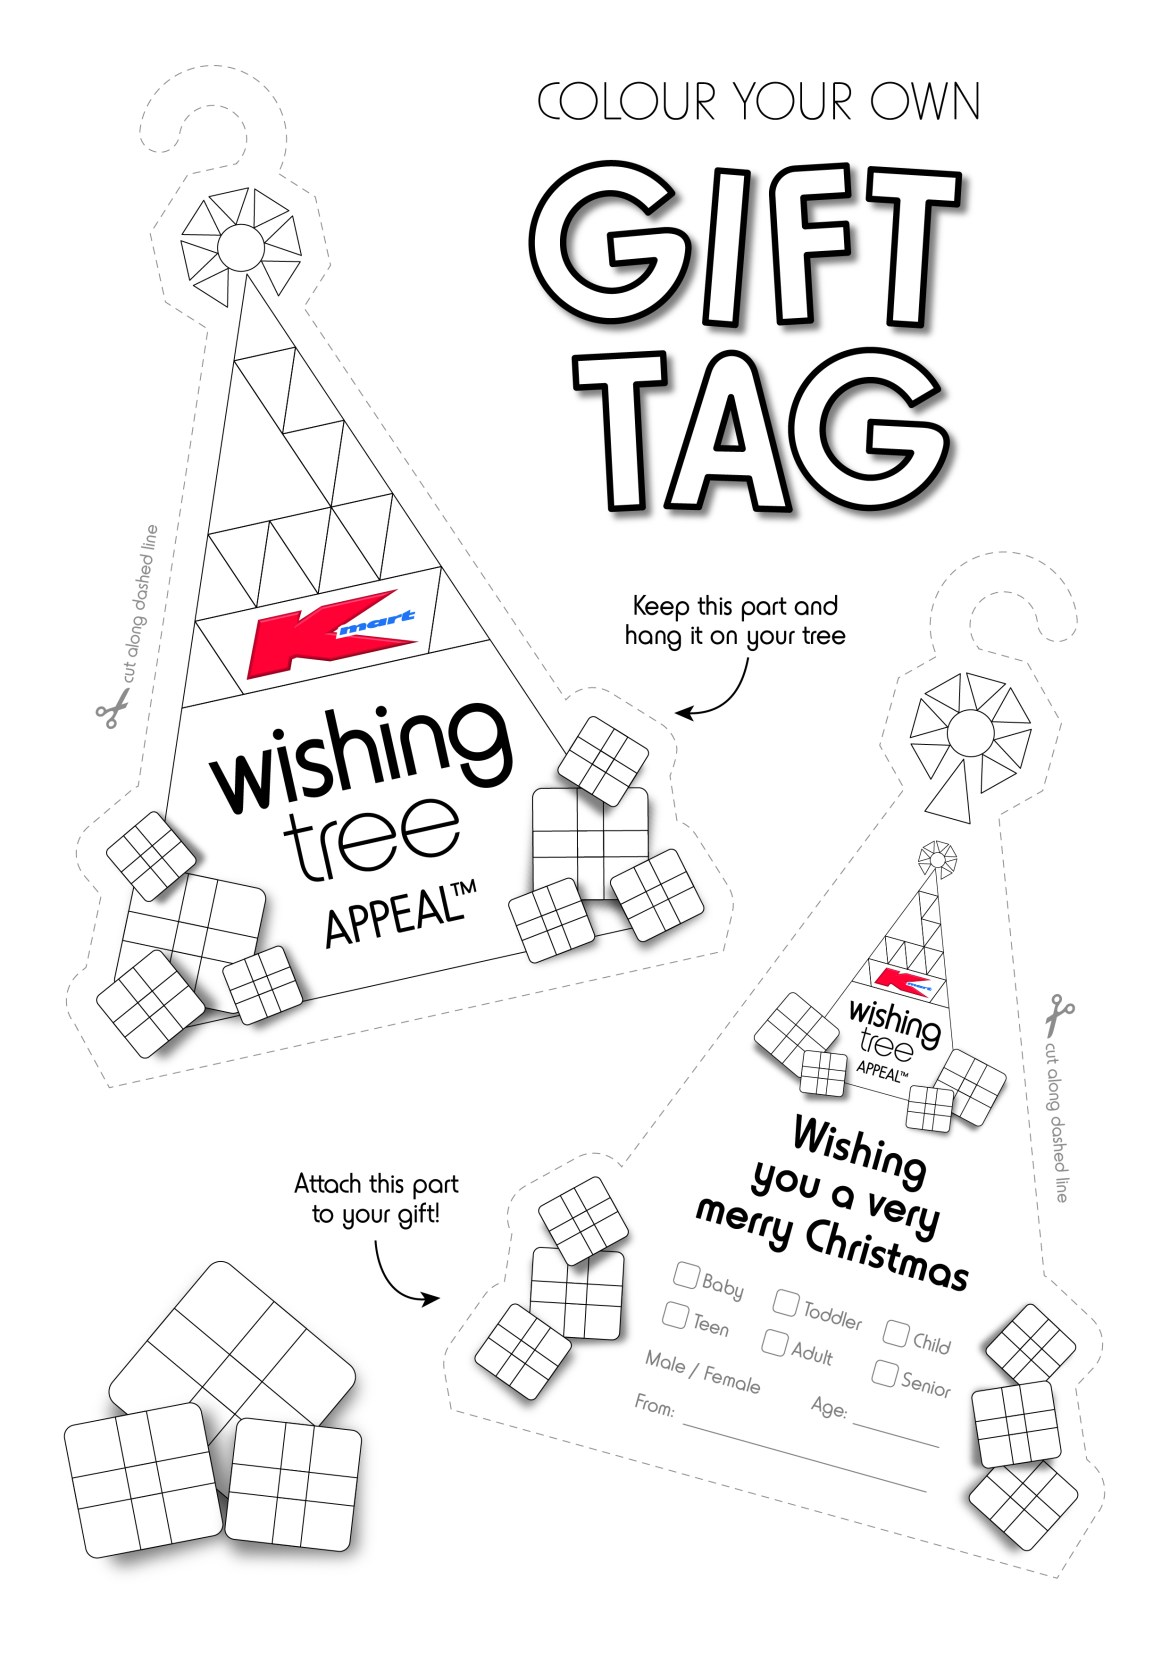 5625_Kmart Wishing Tree 2014_Colour In Gift Tag